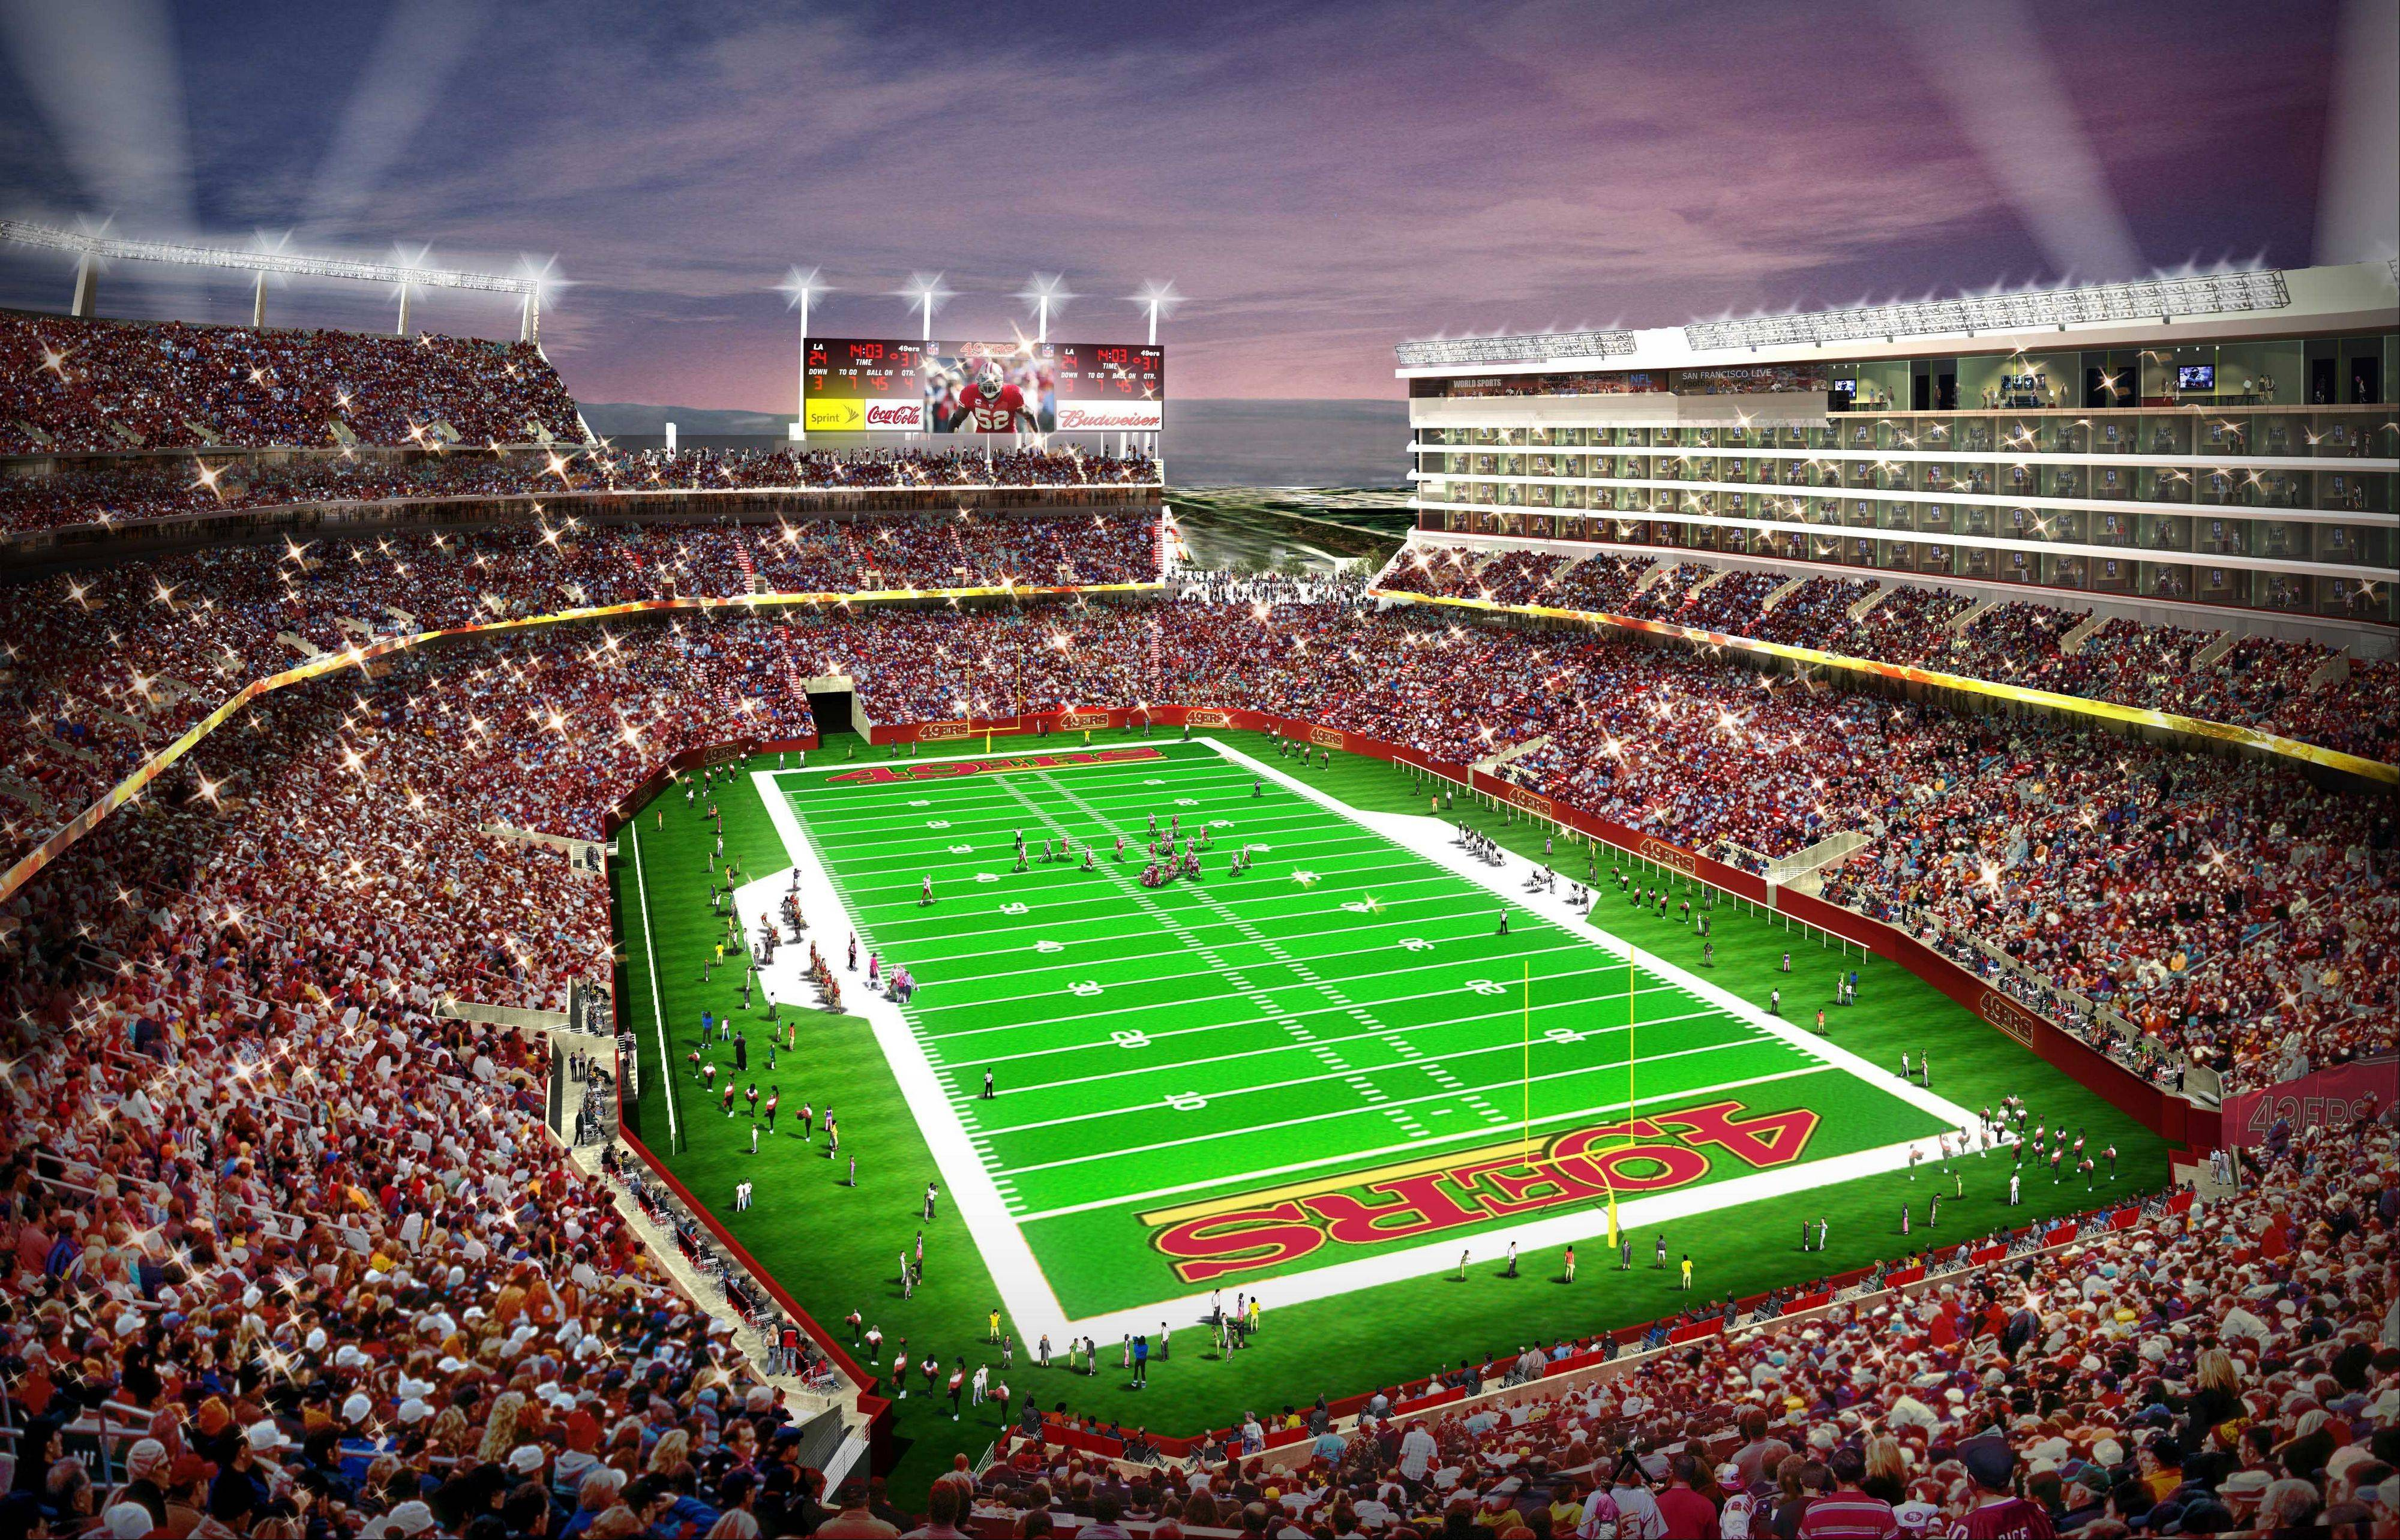 In this artist drawing provided by the San Francisco 49ers, the proposed 49ers stadium in Santa Clara, Calif. is shown. NFL owners will vote on the sites of the 50th and 51st Super Bowls on Tuesday, May 21, 2013 at their spring meetings. The San Francisco area, where the new stadium is being built in Santa Clara, and South Florida are competing for the the 50th edition, to be held in February 2016.